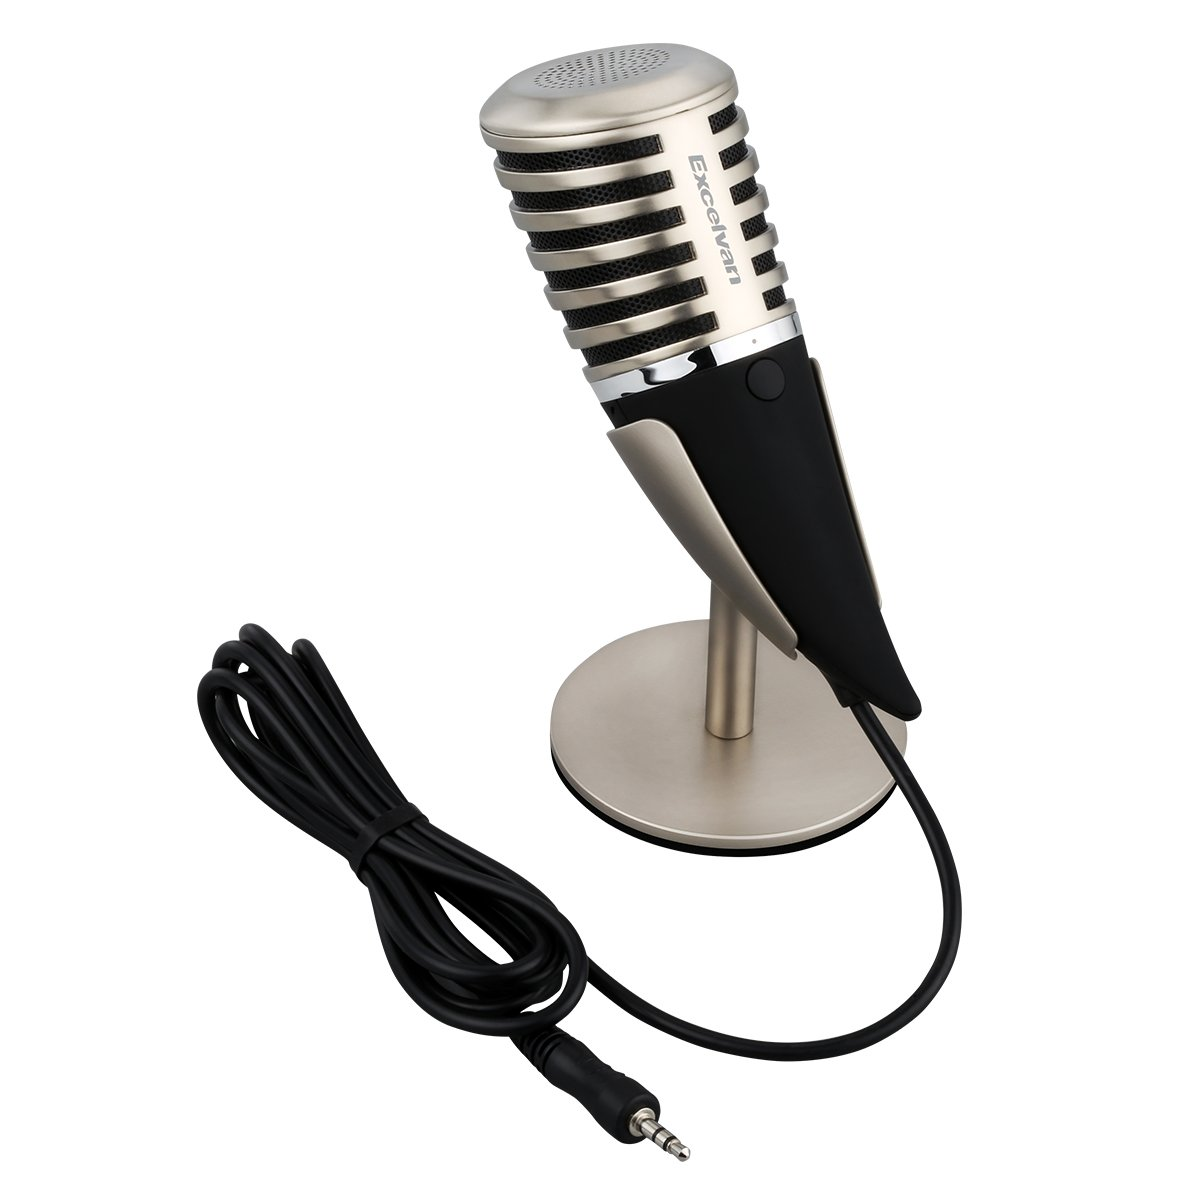 Excelvan SF-700 Condenser Microphone Professional 3.5mm Plug &Play PC Recording Mic with All Metal Stand Retro Unique Ox Horn Design for Broadcasting,Gaming, Music Recording by Excelvan (Image #9)